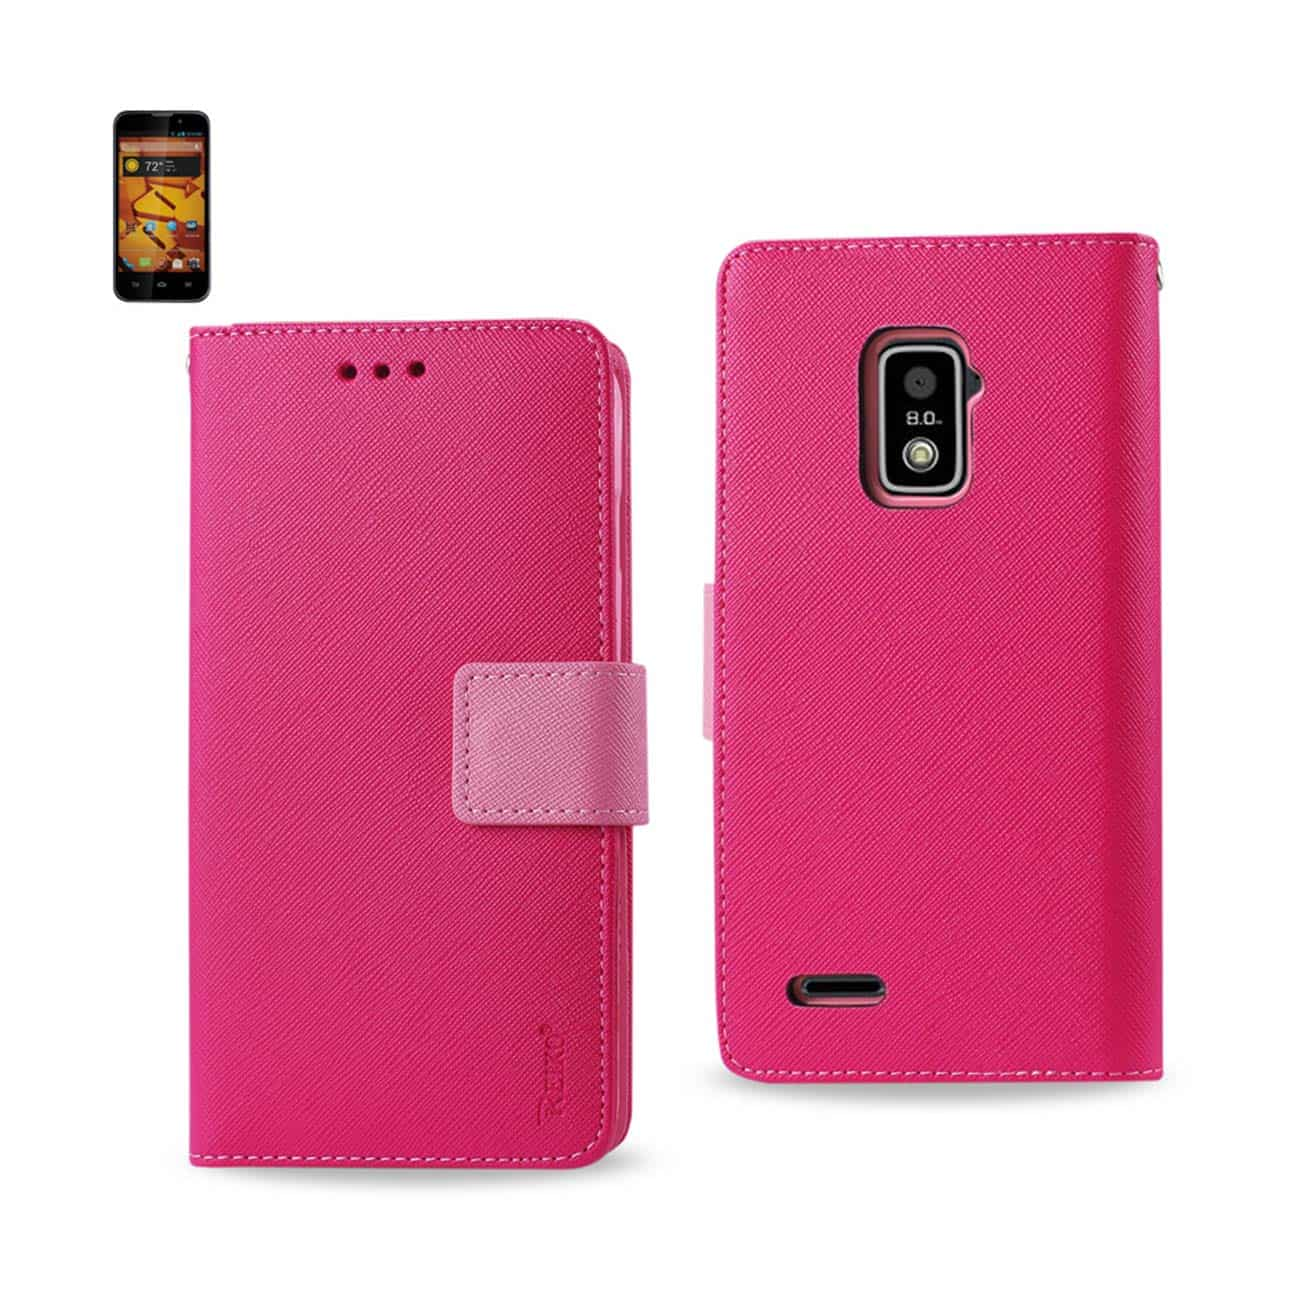 ZTE WARP 4G 3-IN-1 WALLET CASE IN HOT PINK